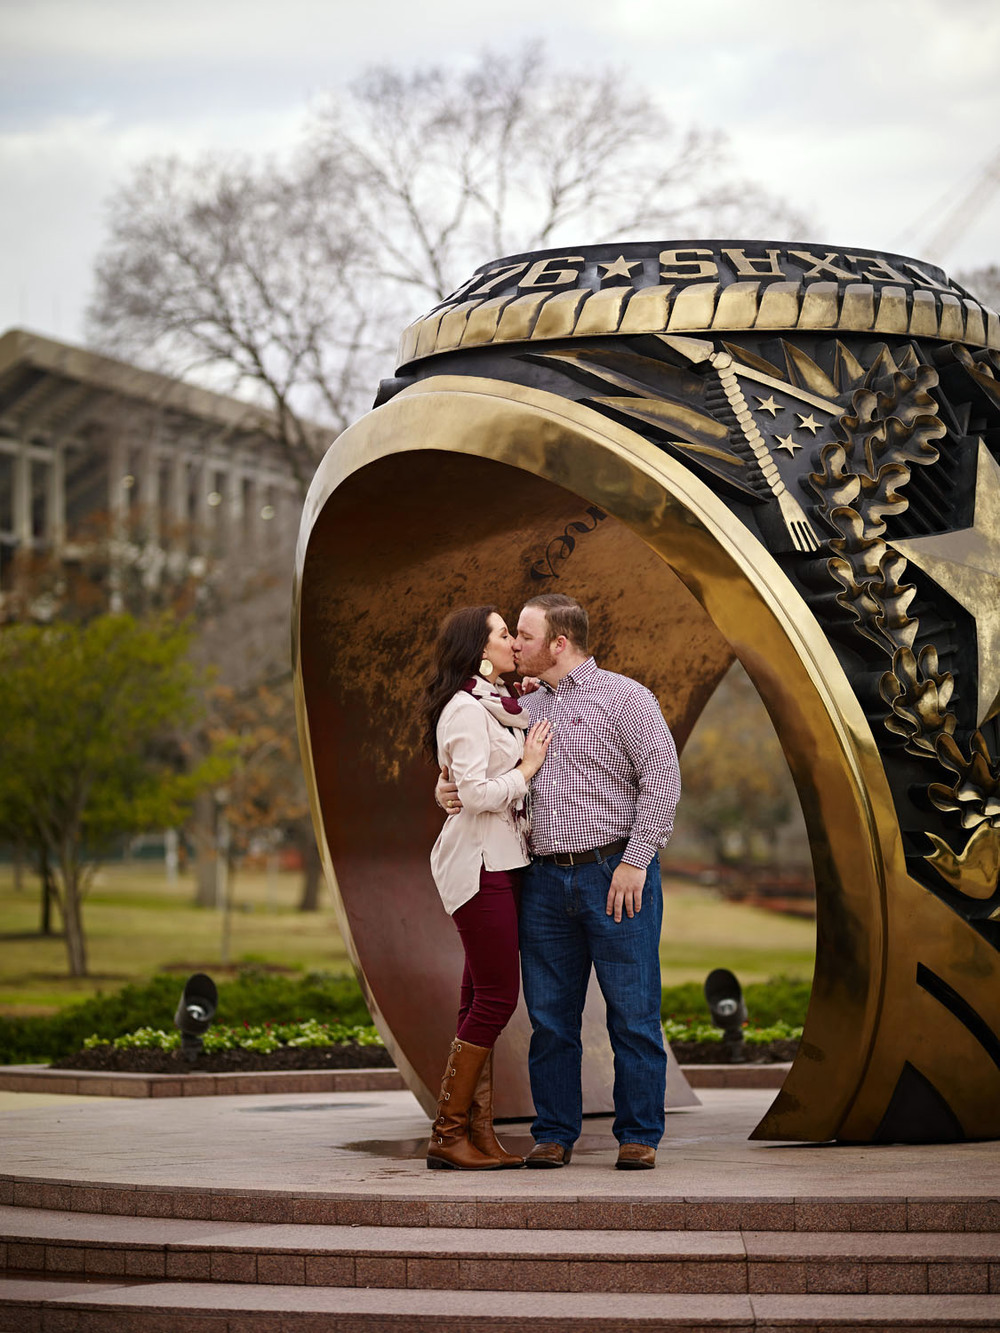 "'The Big Aggie Ring"" at the Alumni Center at the A&M Campus in College Station, TX."